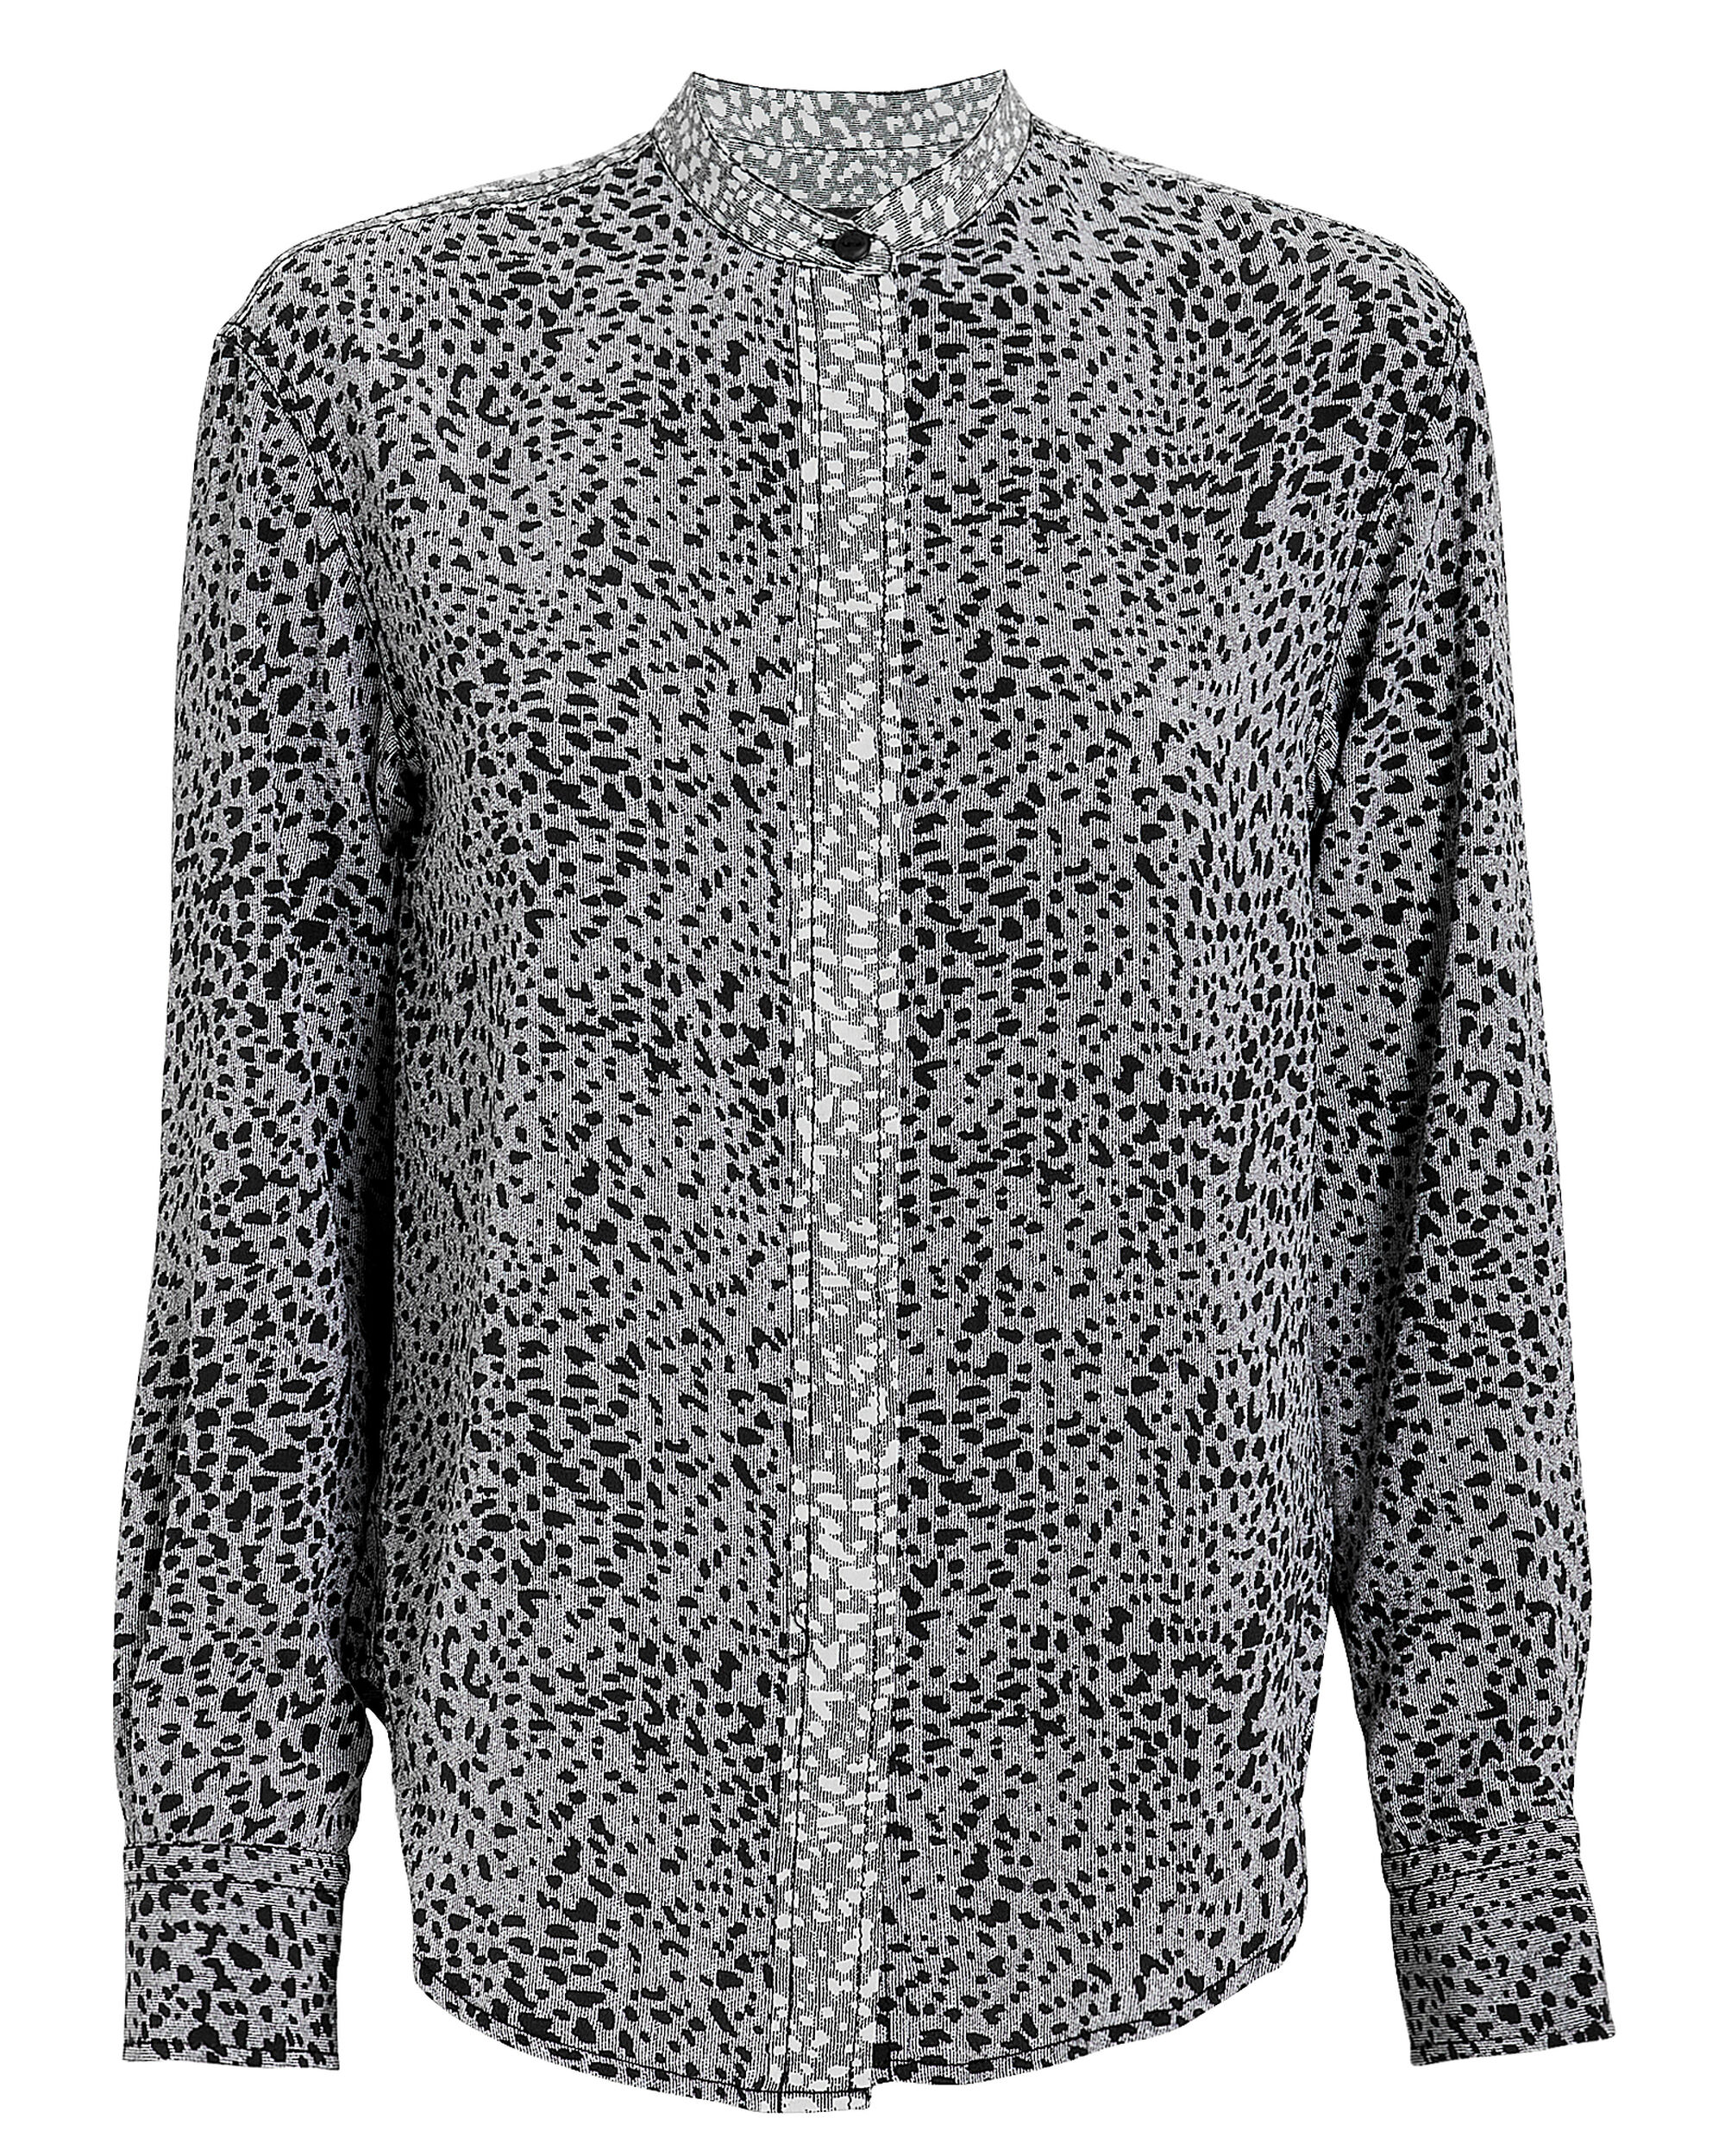 Christie Shirt, GREY/BLACK LEOPARD, hi-res